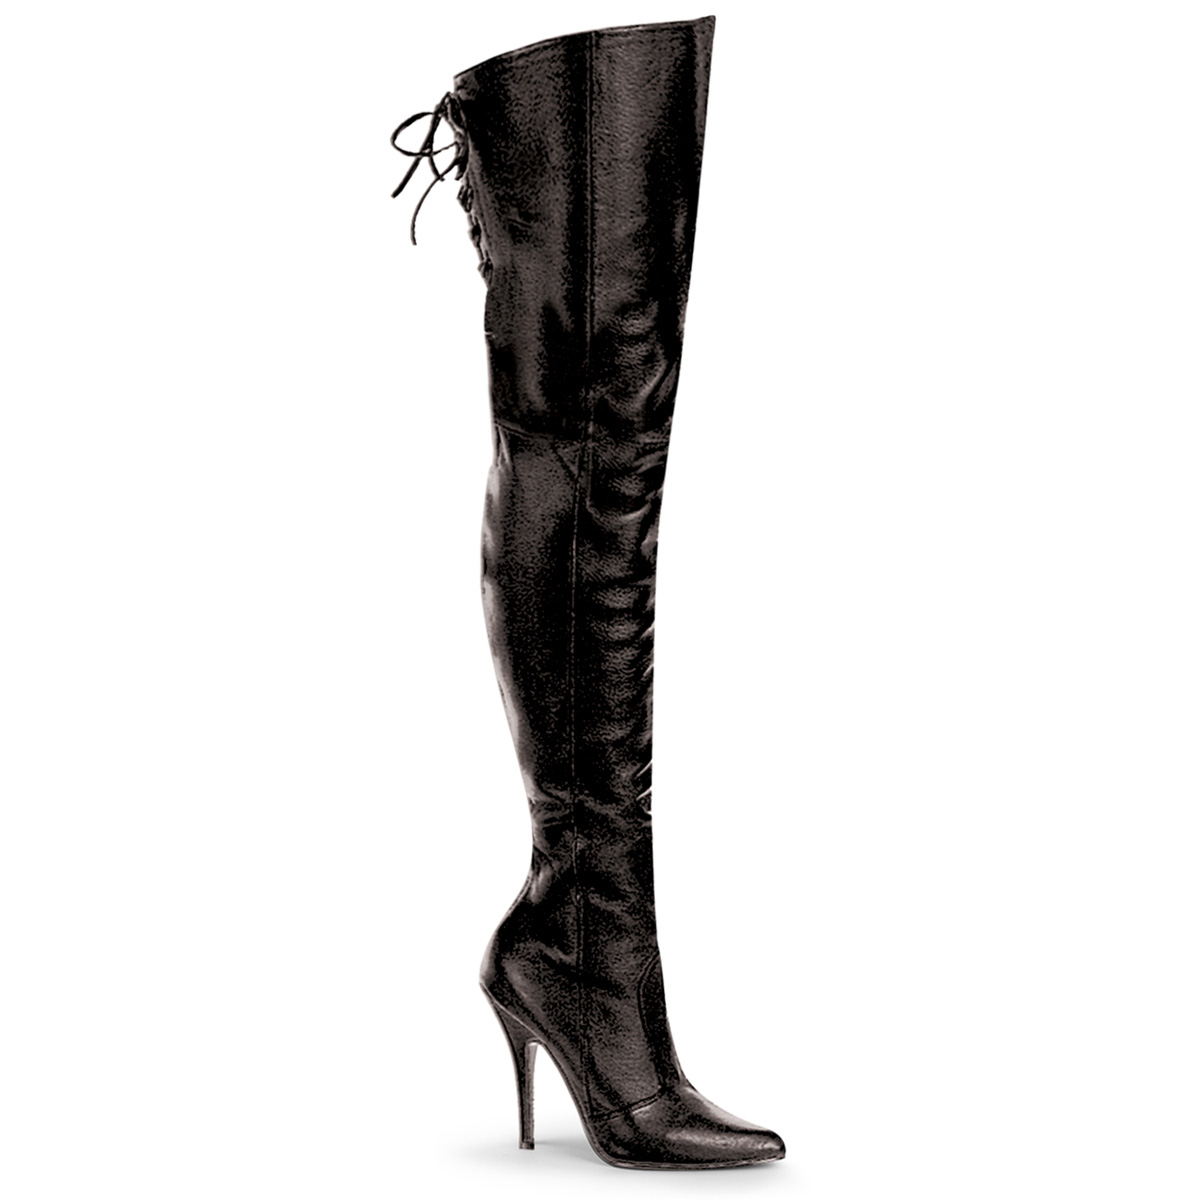 black thigh high boots 3 inch heel